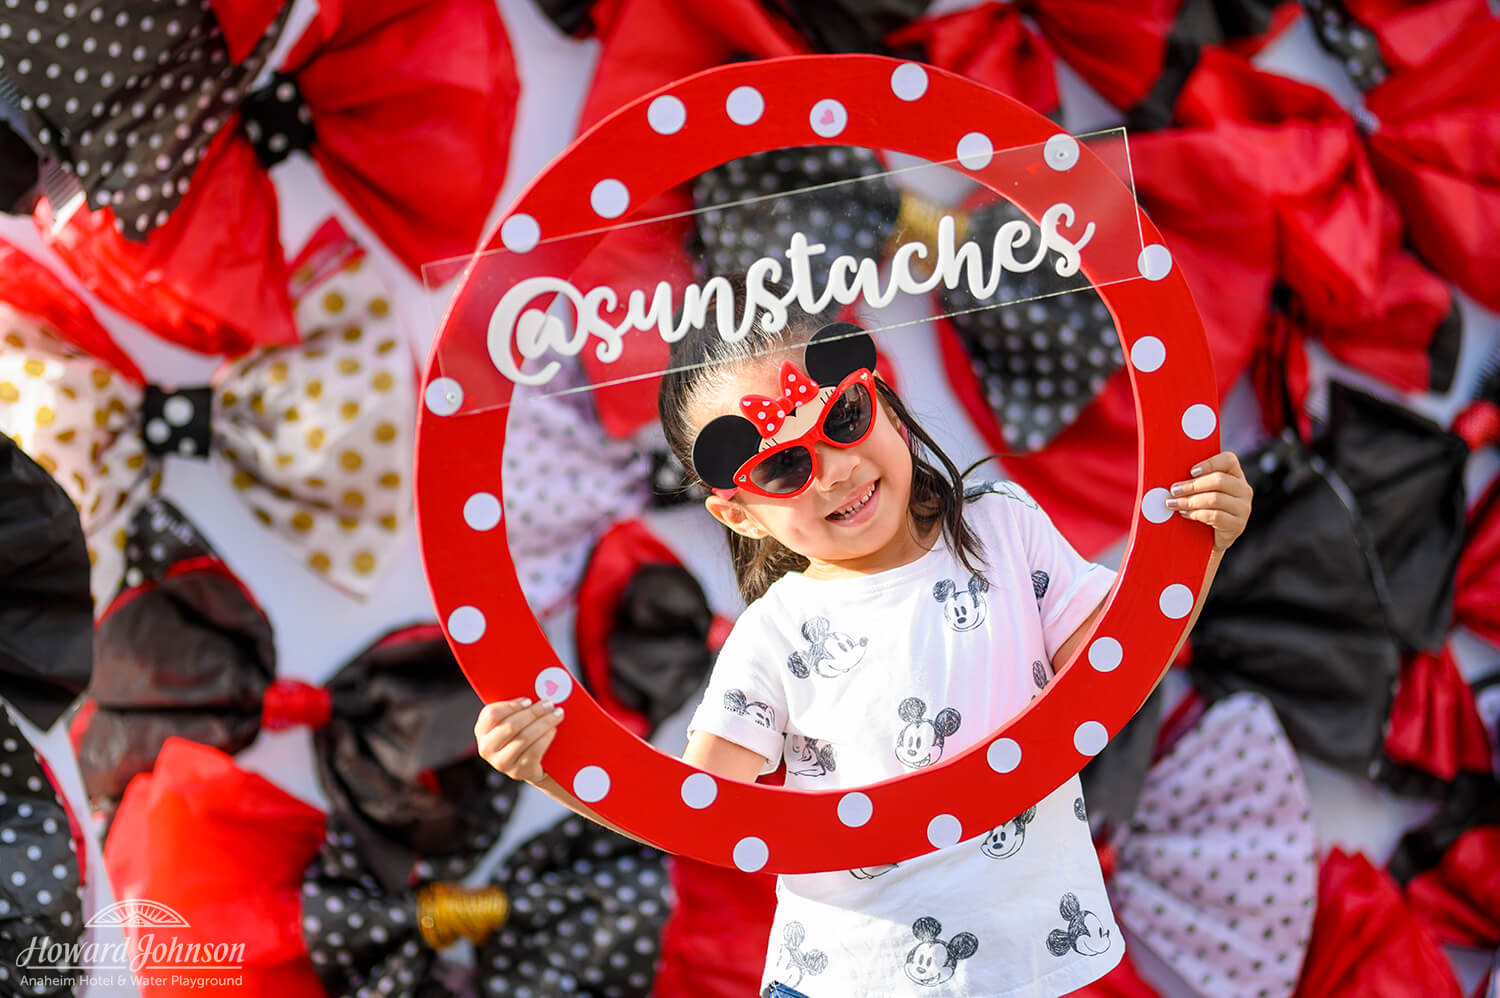 a little girl with Minnie Mouse sunglasses poses for a photo with a circular polka dot frame and social media handle on it